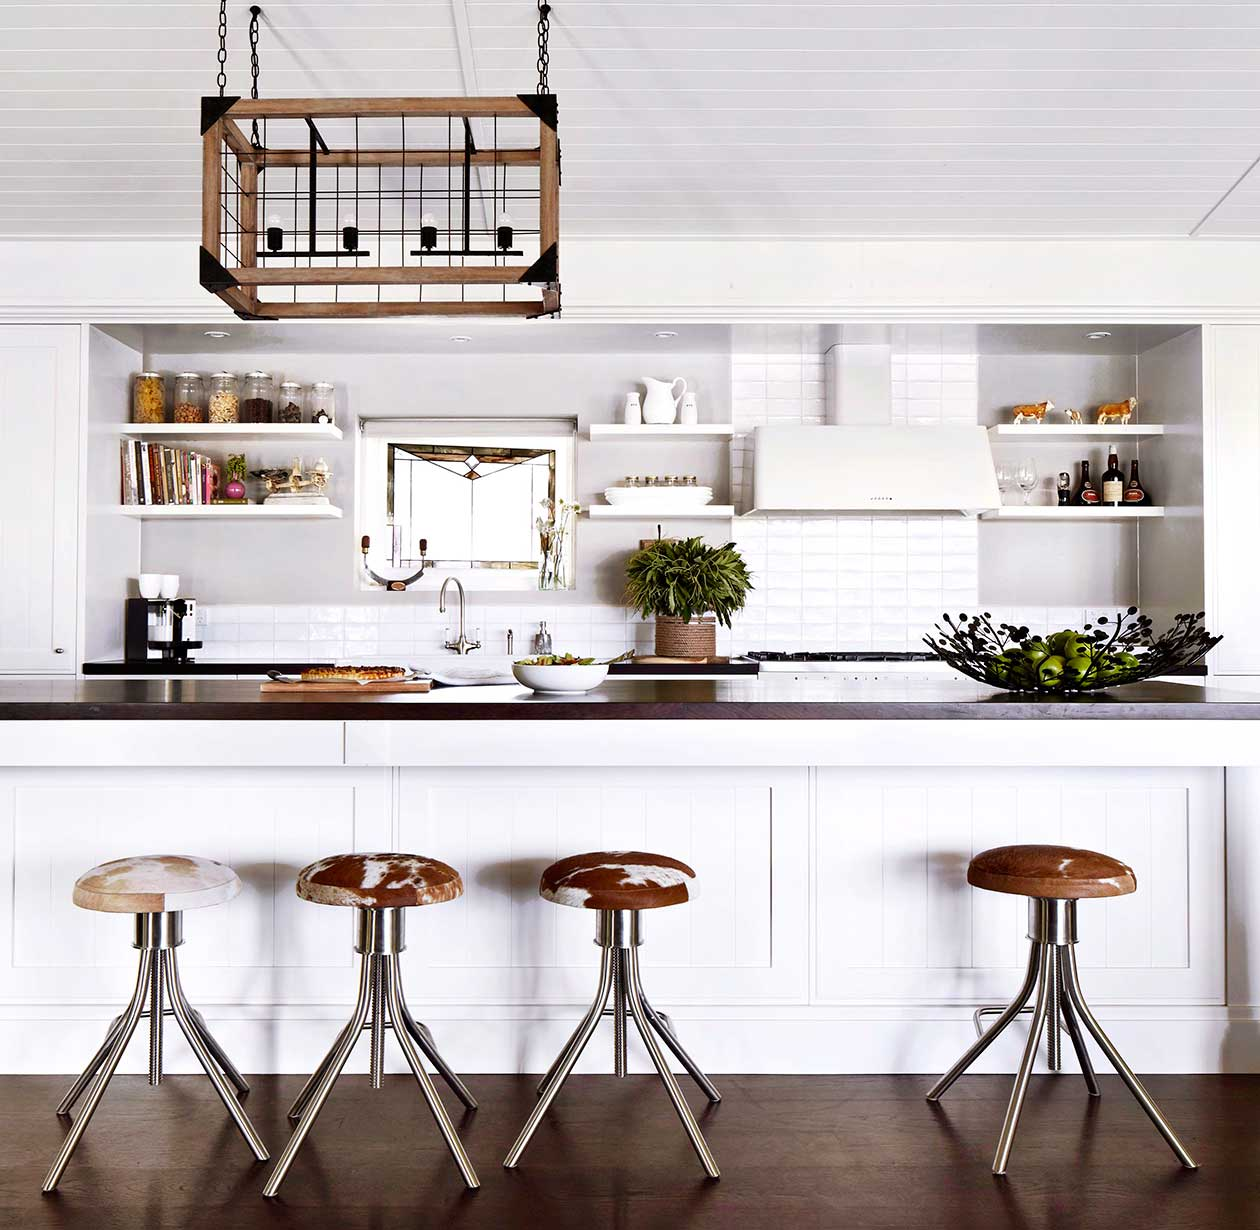 Featured on Houzz in a Cafe Special Danielle Trippett Interior Design